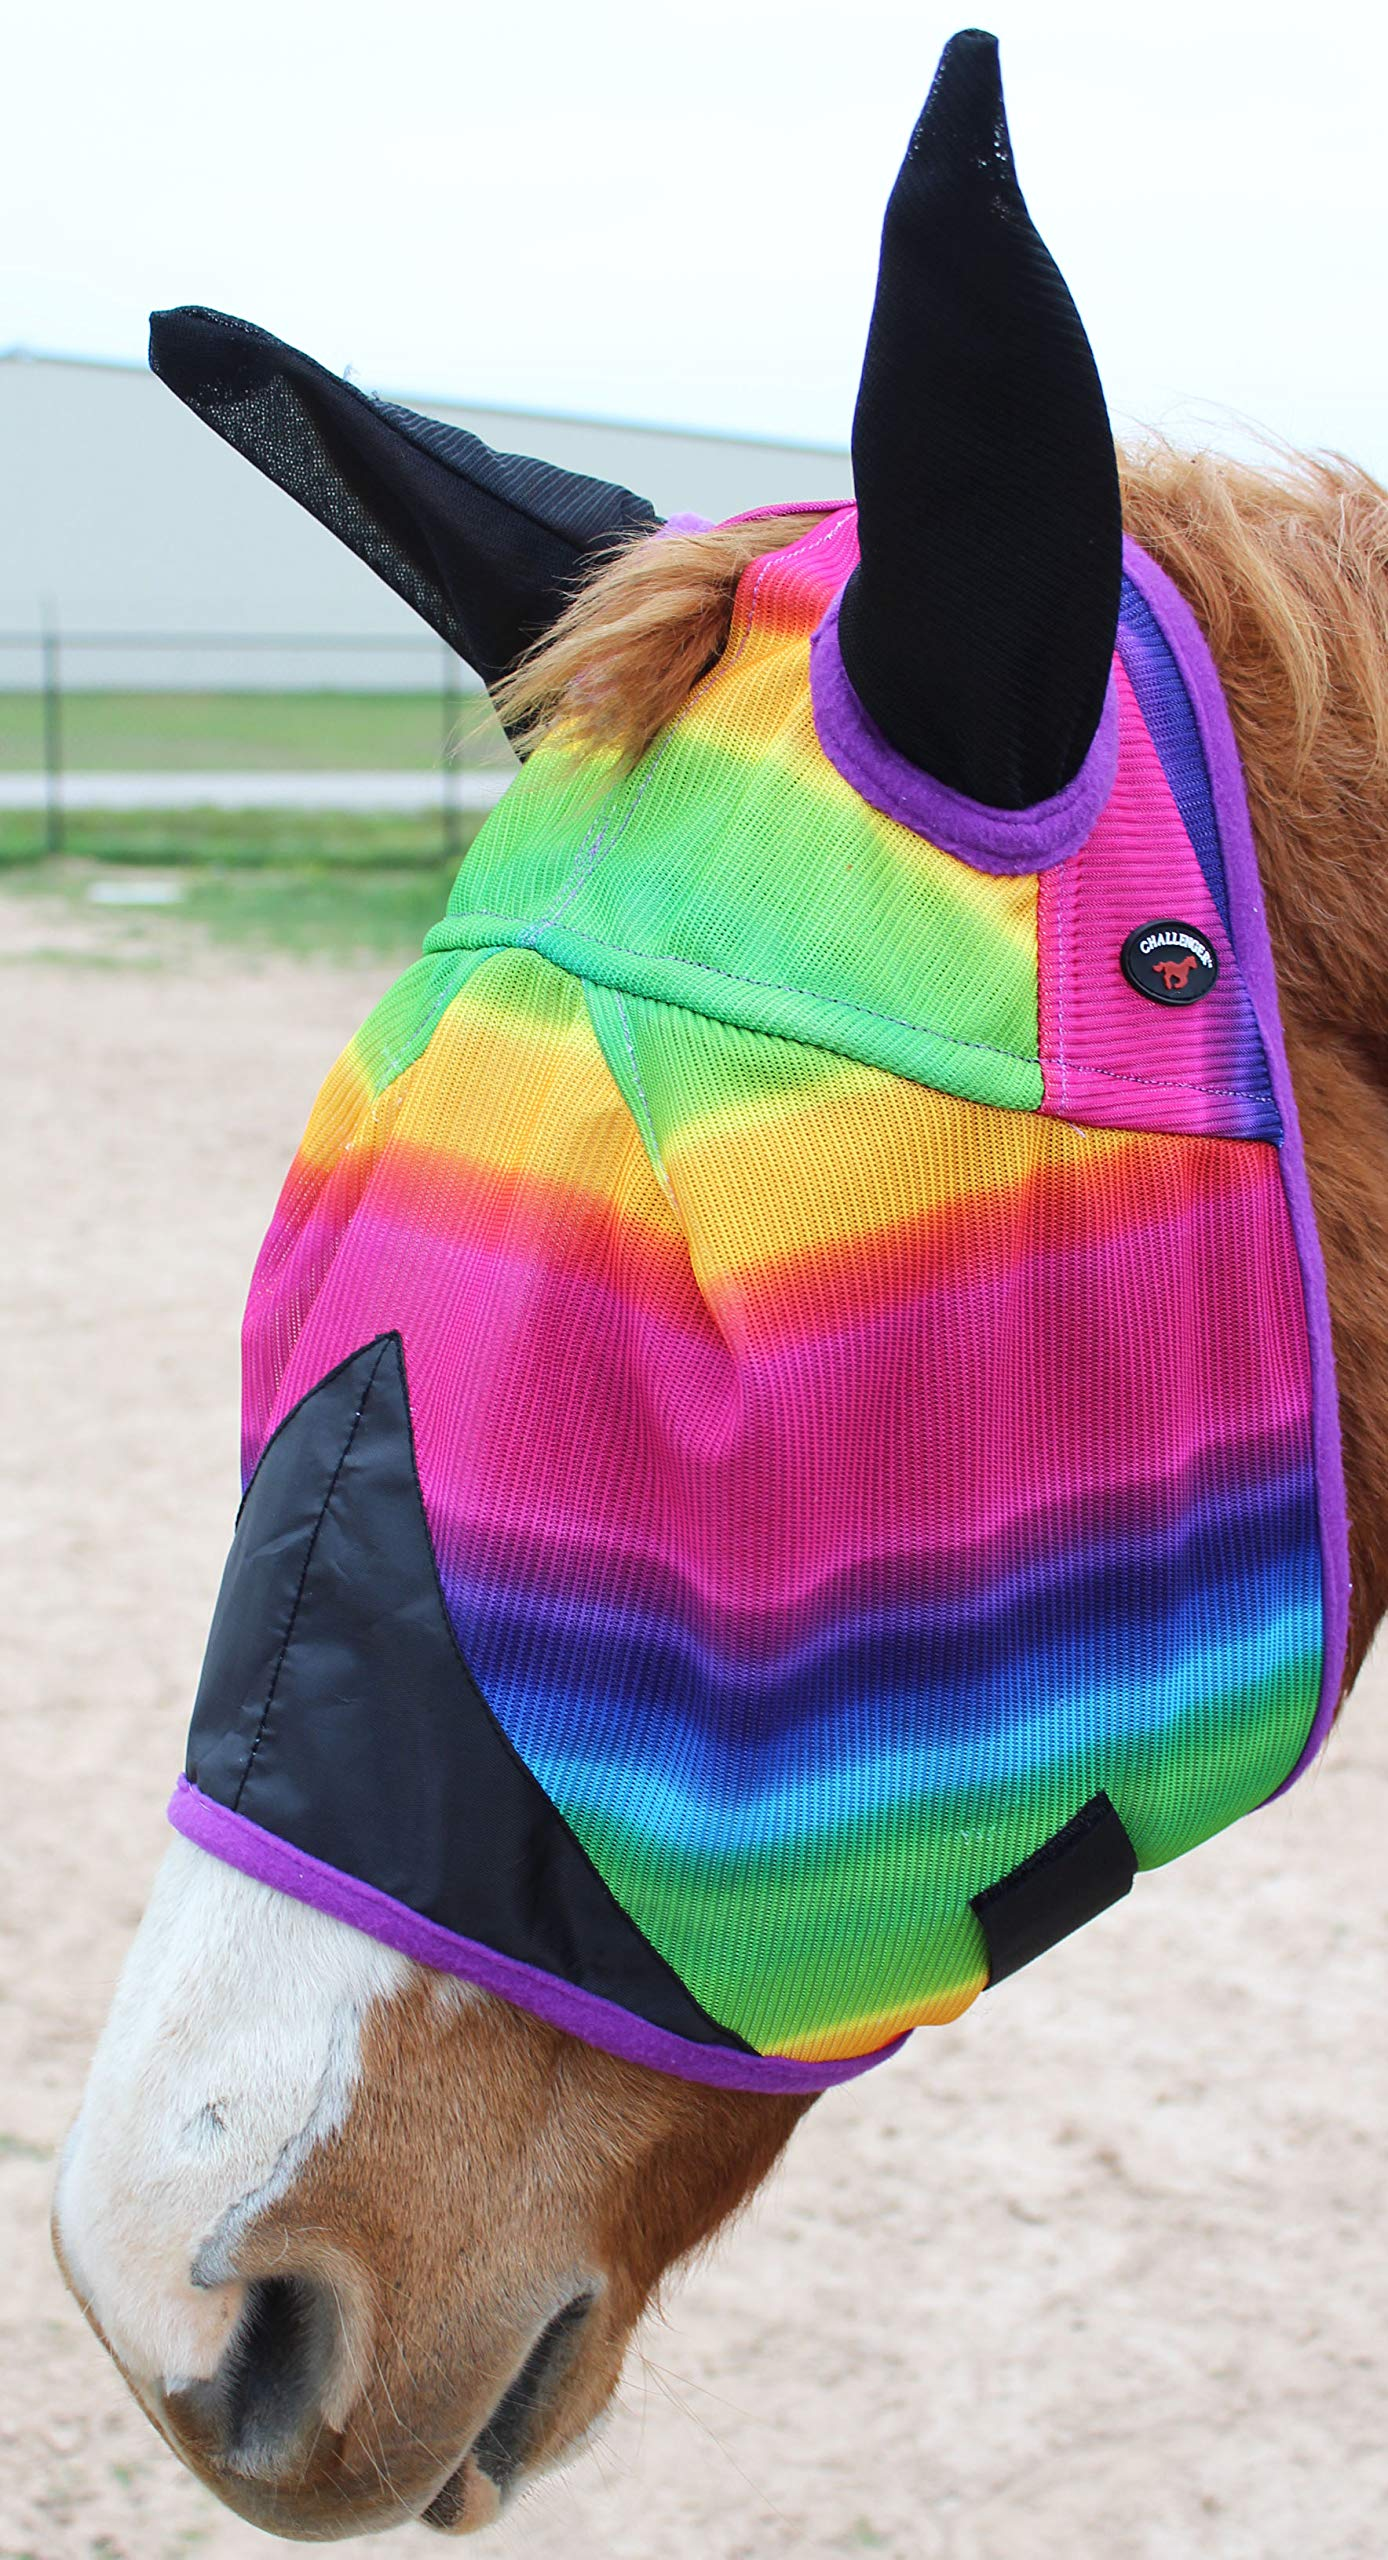 CHALLENGER Horse UV Bug Protection Airflow Mesh Summer Fly Mask with Ears Rainbow 73206 by CHALLENGER